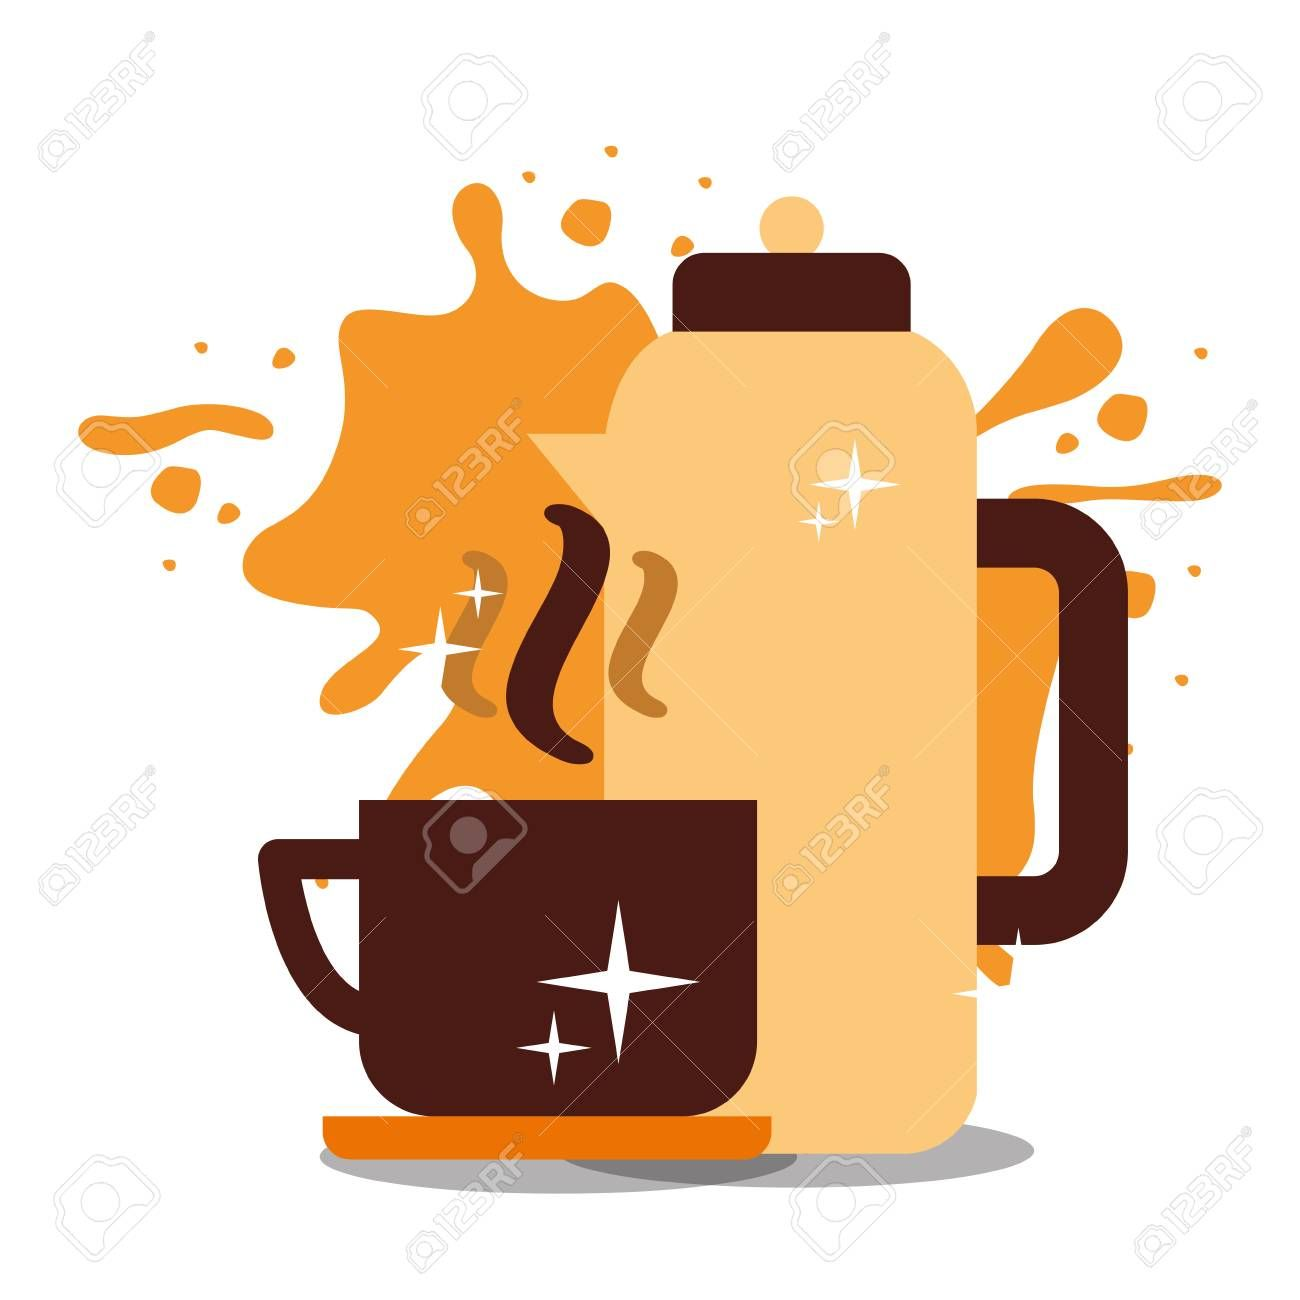 Coffee cup on dish with splashes background vector illustration